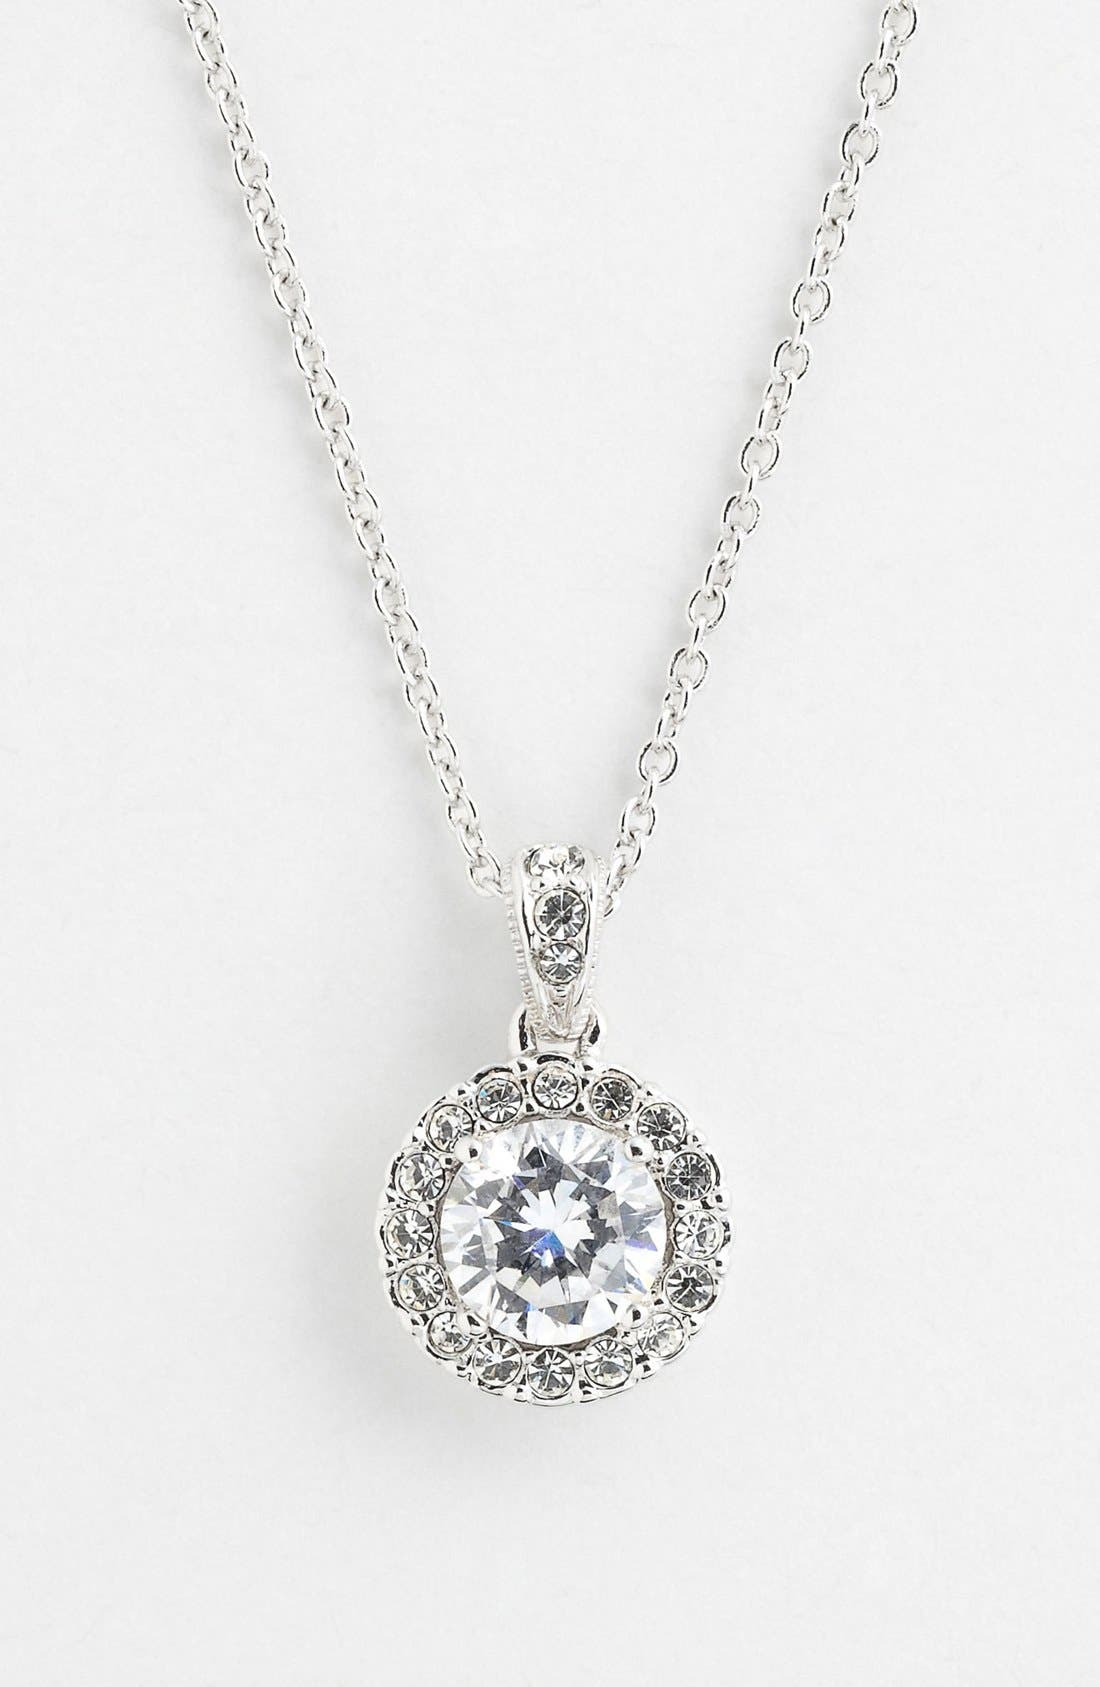 Alternate Image 1 Selected - Nadri Framed Round Cubic Zirconia Necklace (Nordstrom Exclusive)